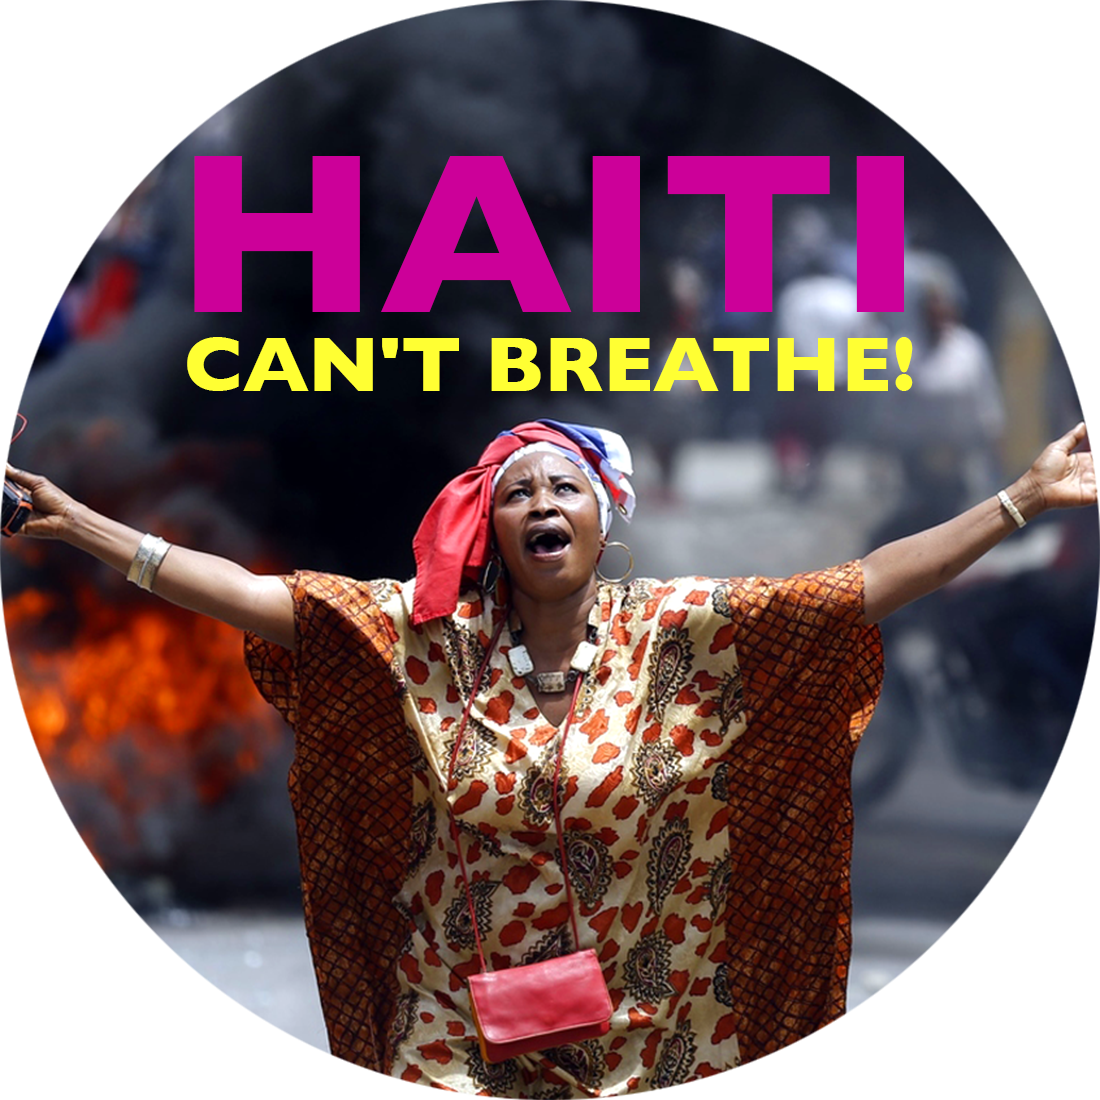 Haiti Can't Breathe!: The U.S. and OAS are backing Jovenel Moise's attempt to grab power in Haiti.  The U.S., OAS, UN and the CORE group need to take their hands off Haiti now!